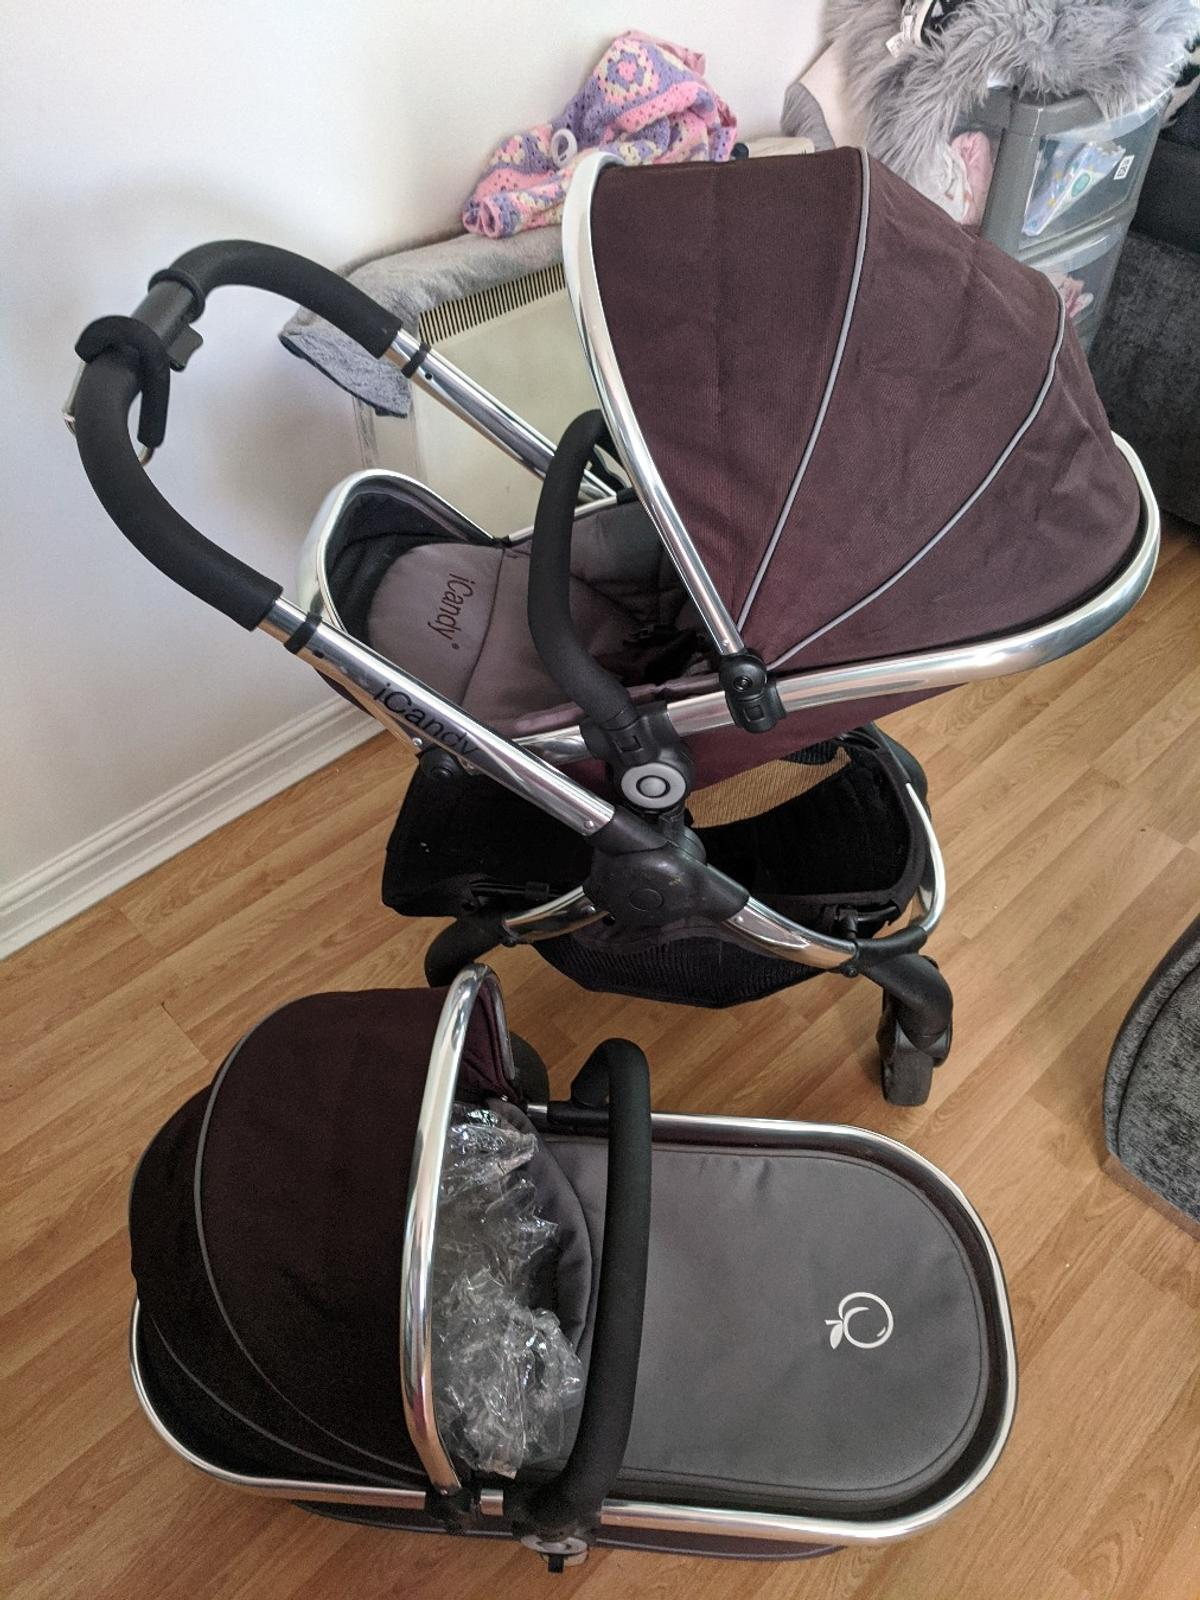 comes with carrycot and rain cover,a small minor tear in the foam in the Handel but does not affect ability at all.a few scratches on front bottom of frame but hardly noticeable.used for four months.carry cot also comes with added mattress for comfort.